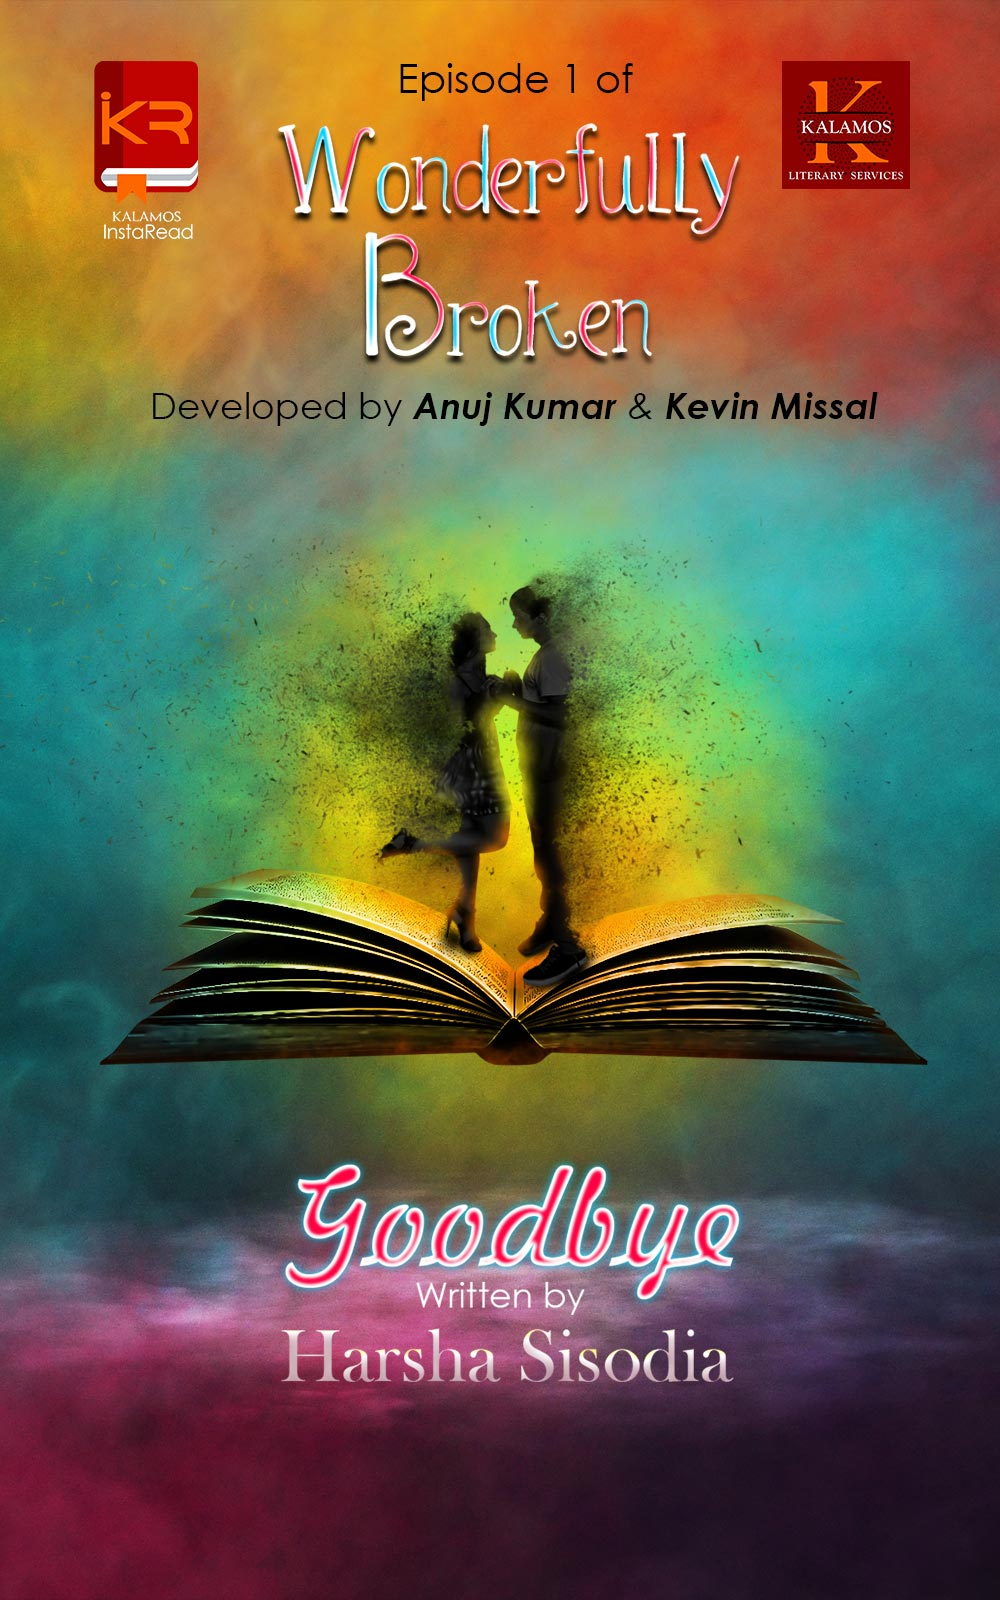 Wonderfully Broken Episode 1: Goodbye By Harsha Sisodia